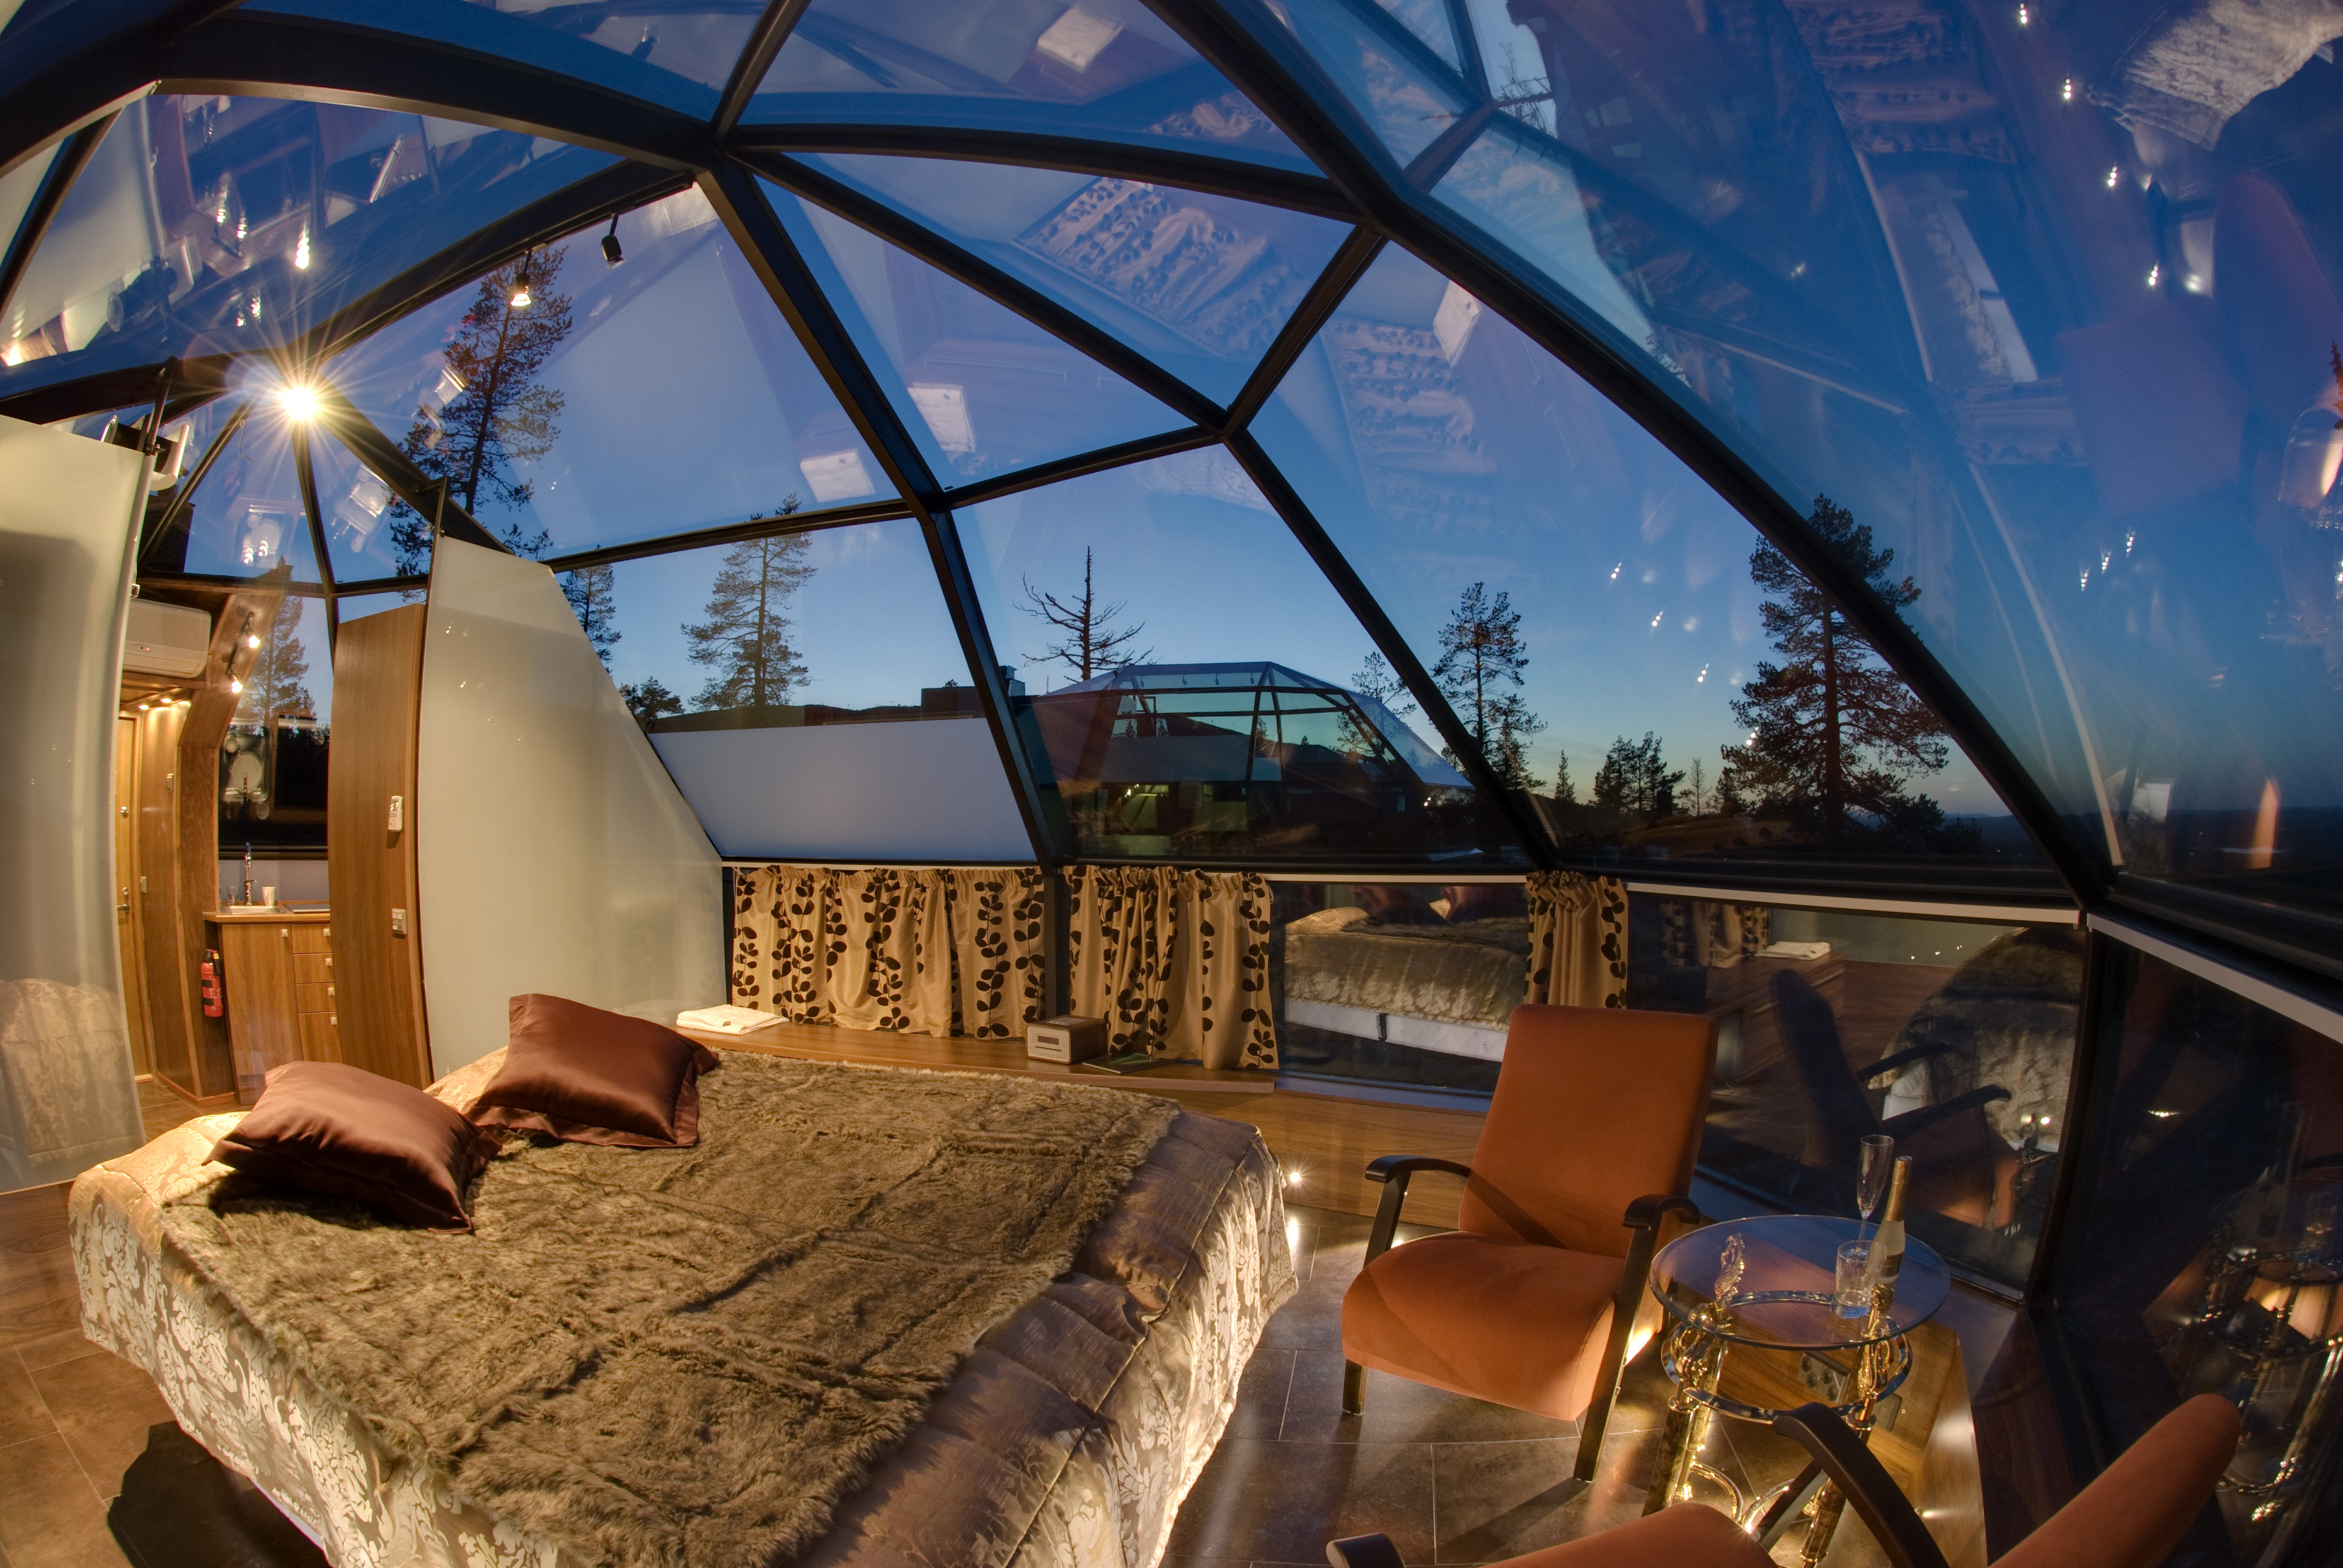 Glass Igloo Hotel Kakslauttanen | Travel Destination